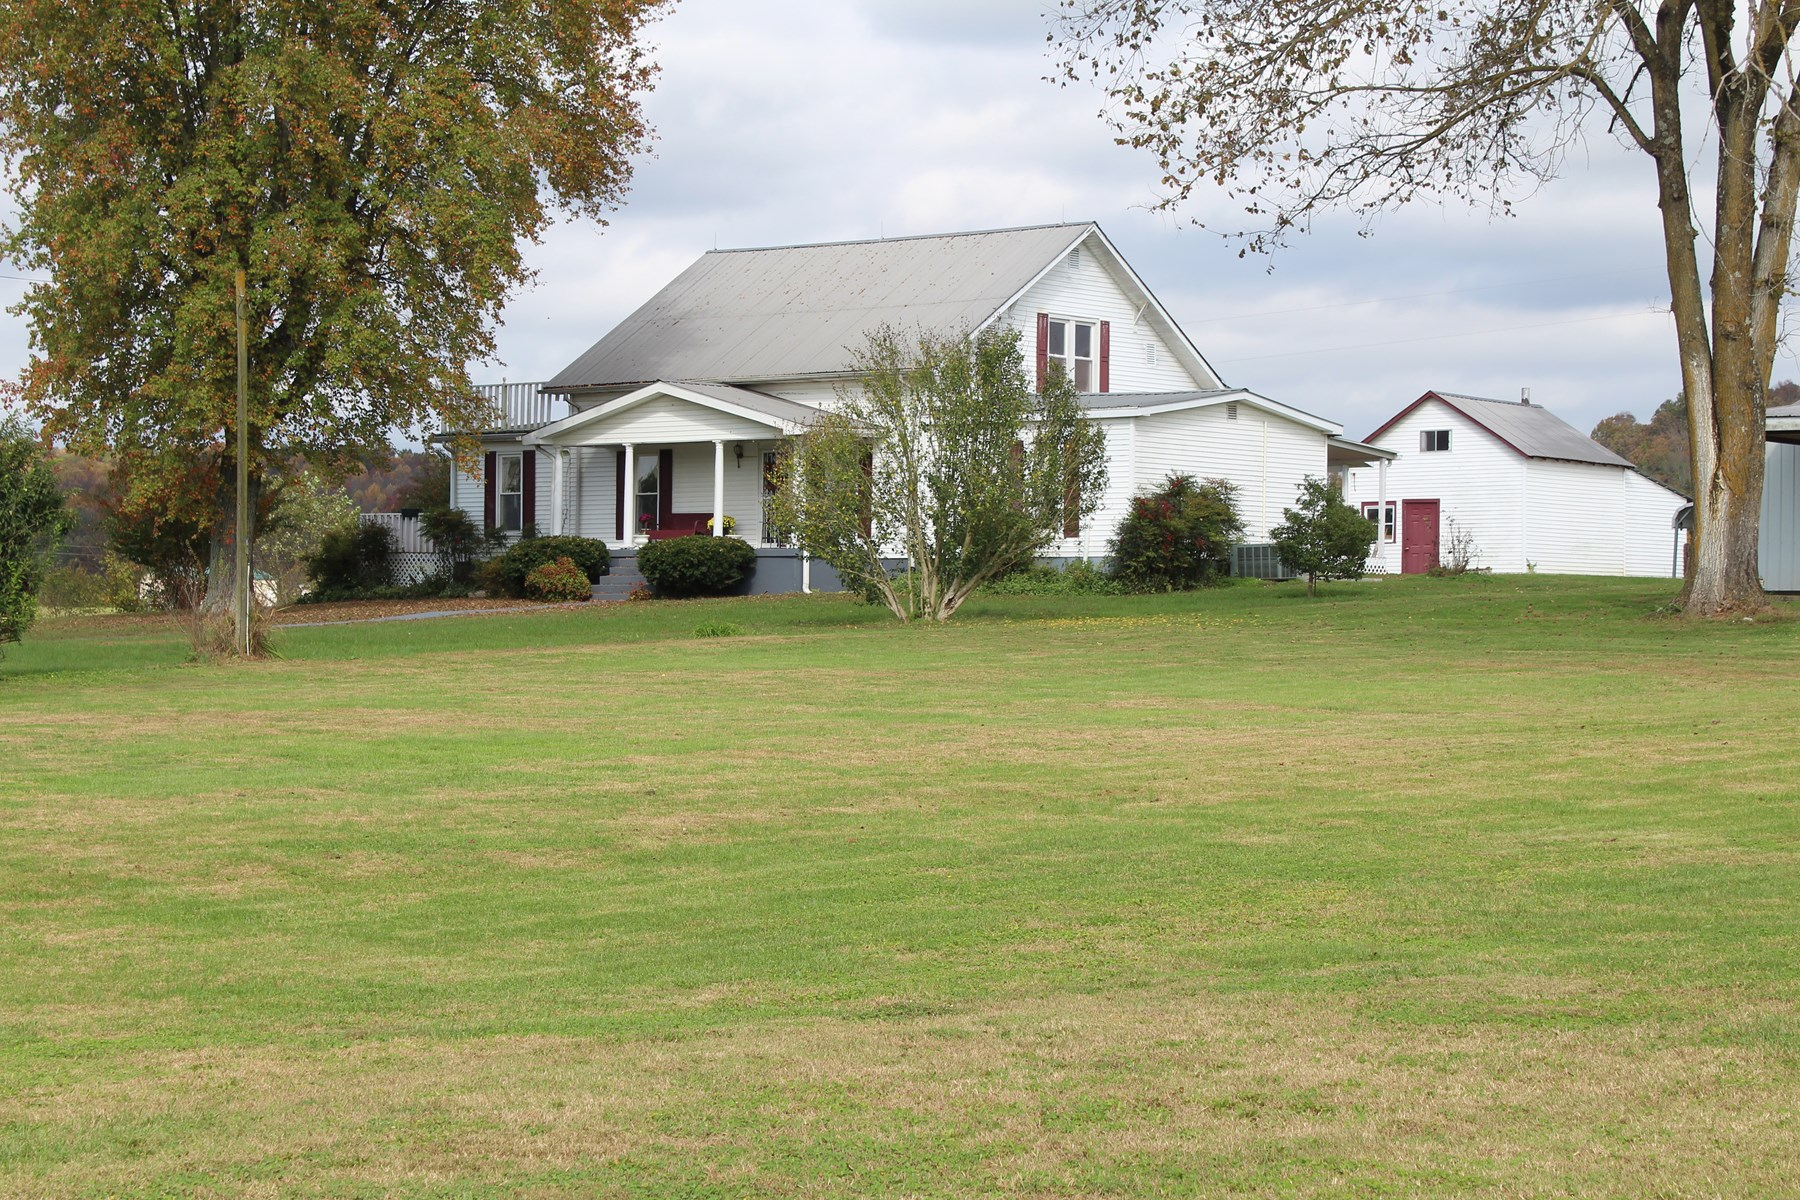 4 bedroom 2 bath country home for sale near Smiths Grove, Ky